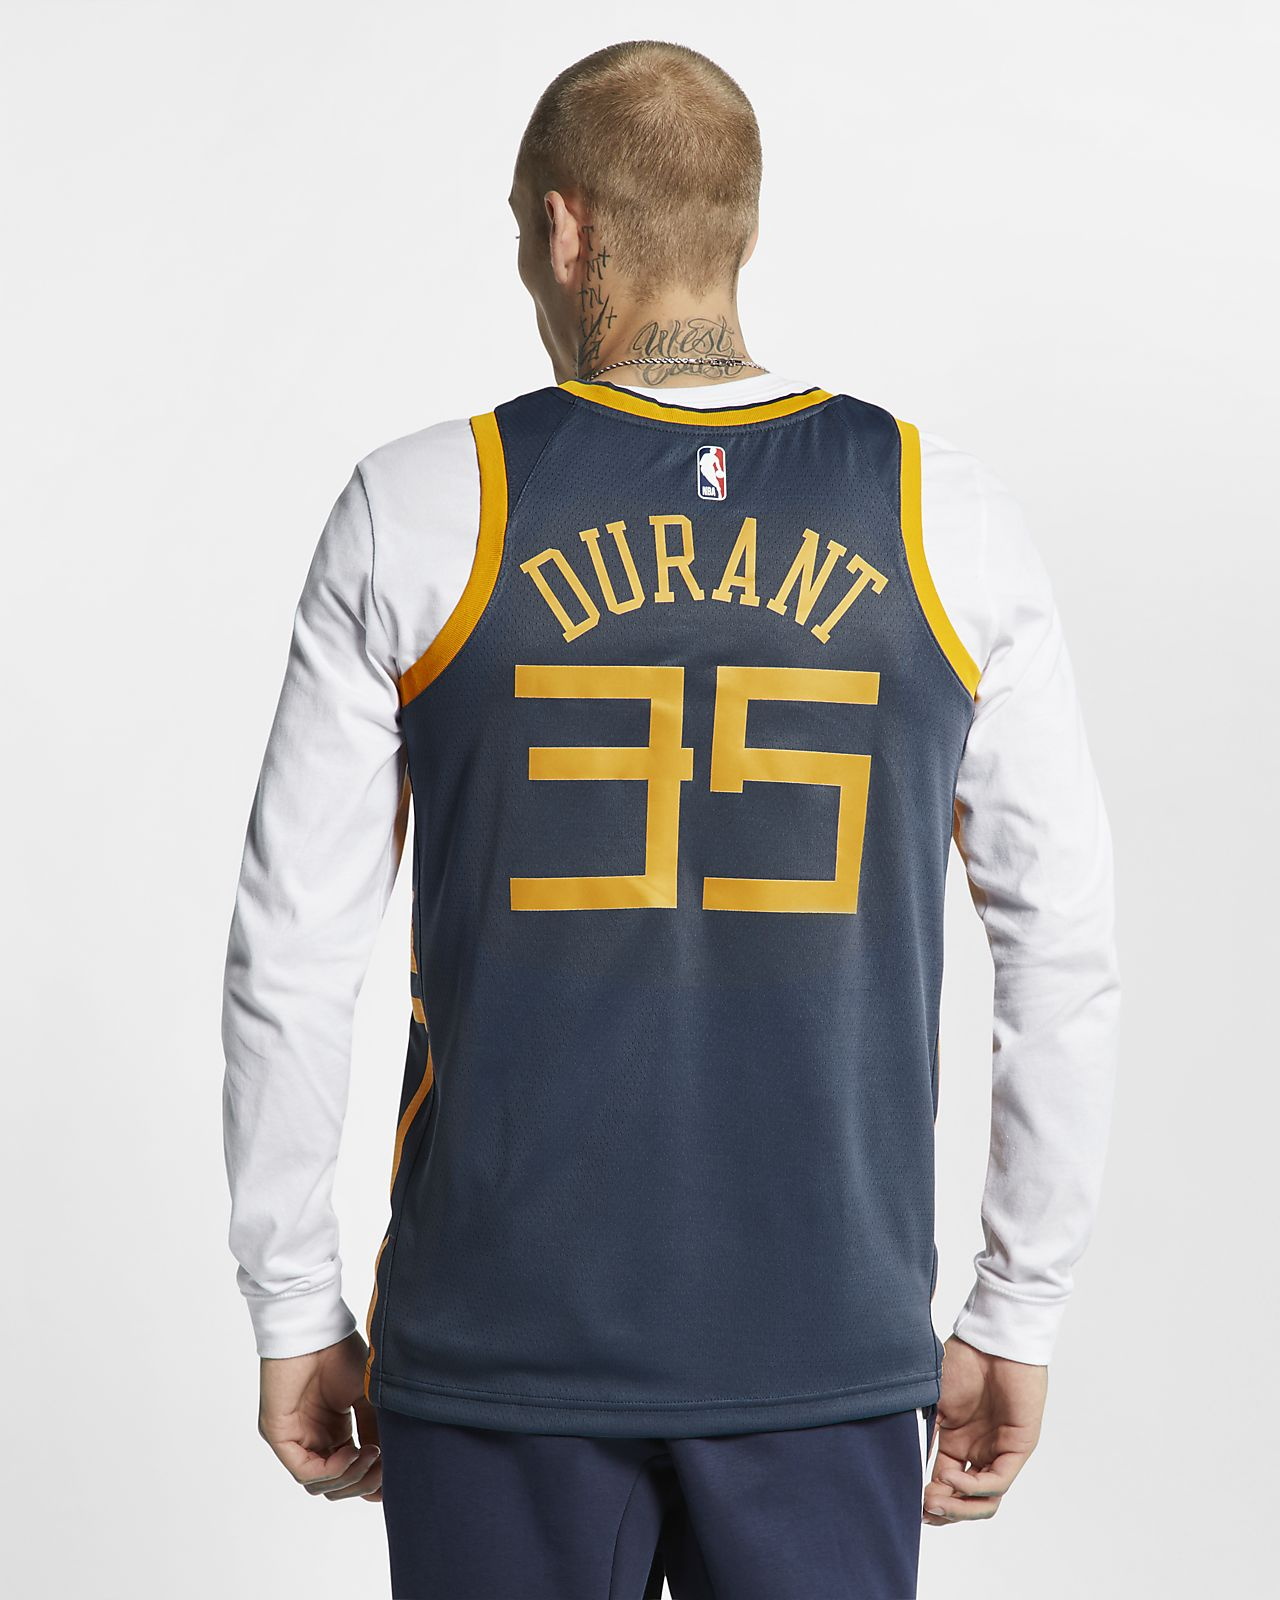 Kevin Connected Durant Nba Nike Swingmangolden State WarriorsCamiseta City Edition Hombre Tl1JFcK3